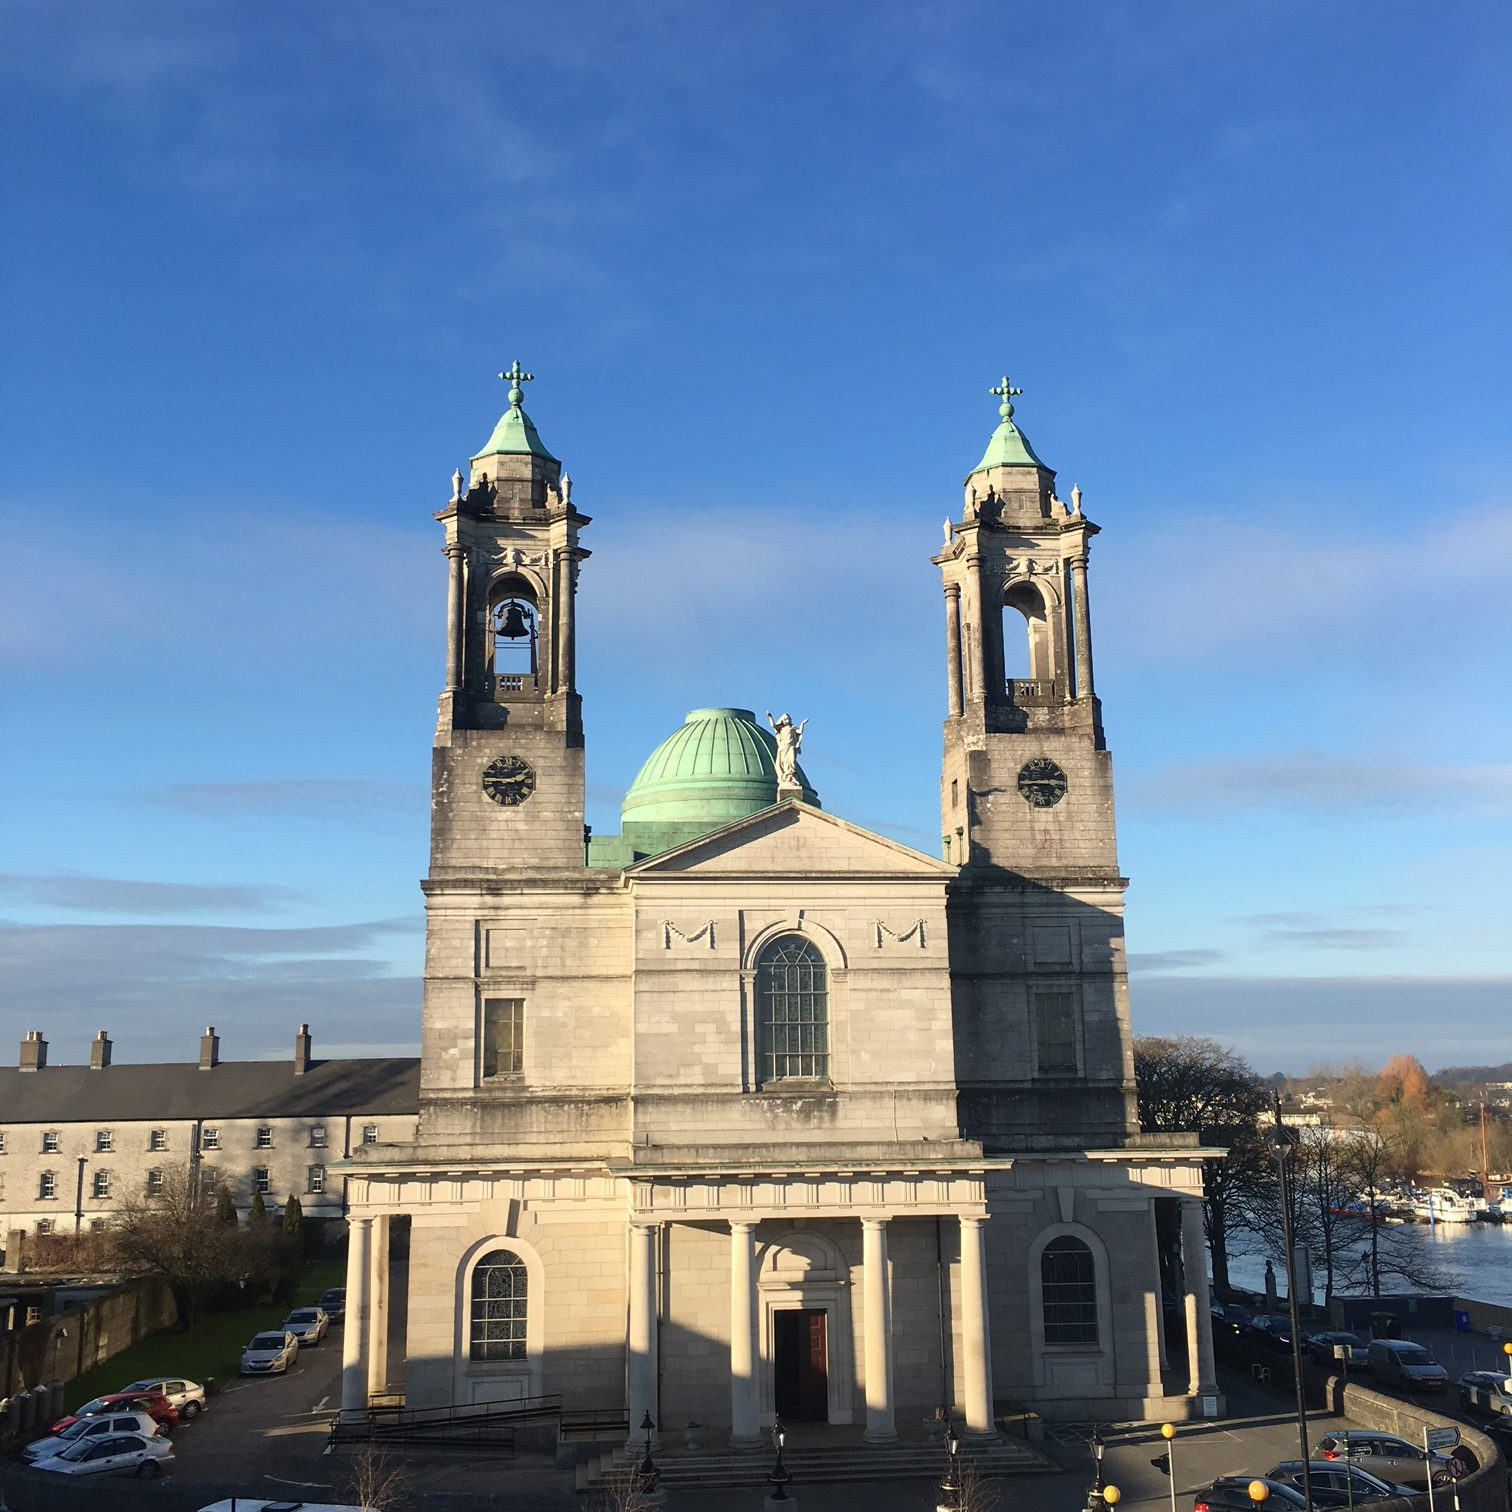 Saints Peter and Paul Church, Athlone, Ireland